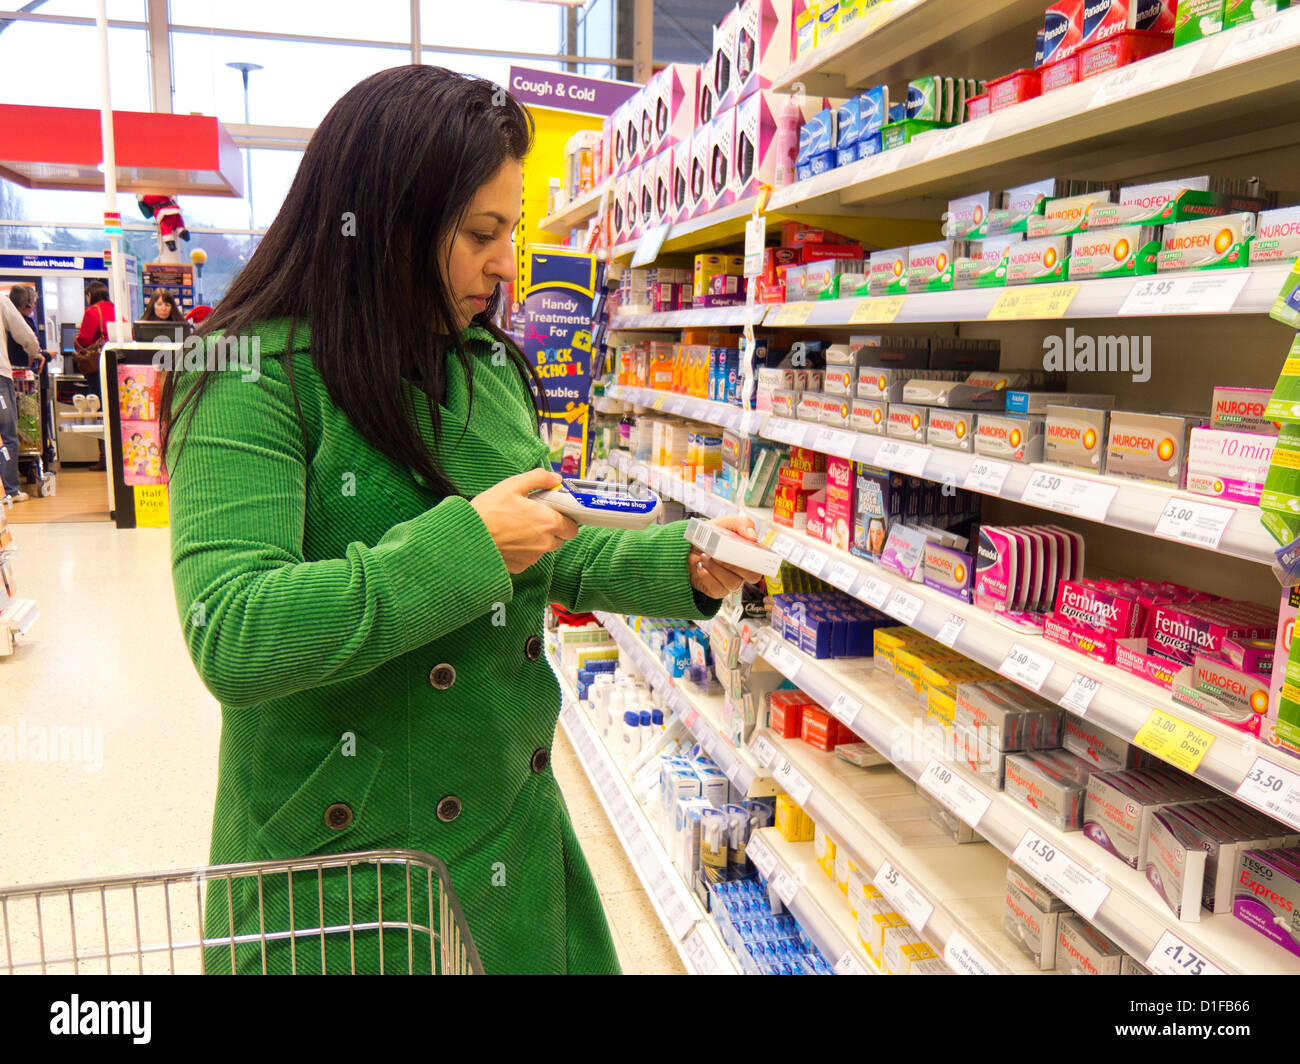 Woman using handheld scan as you shop barcode scanner in ...